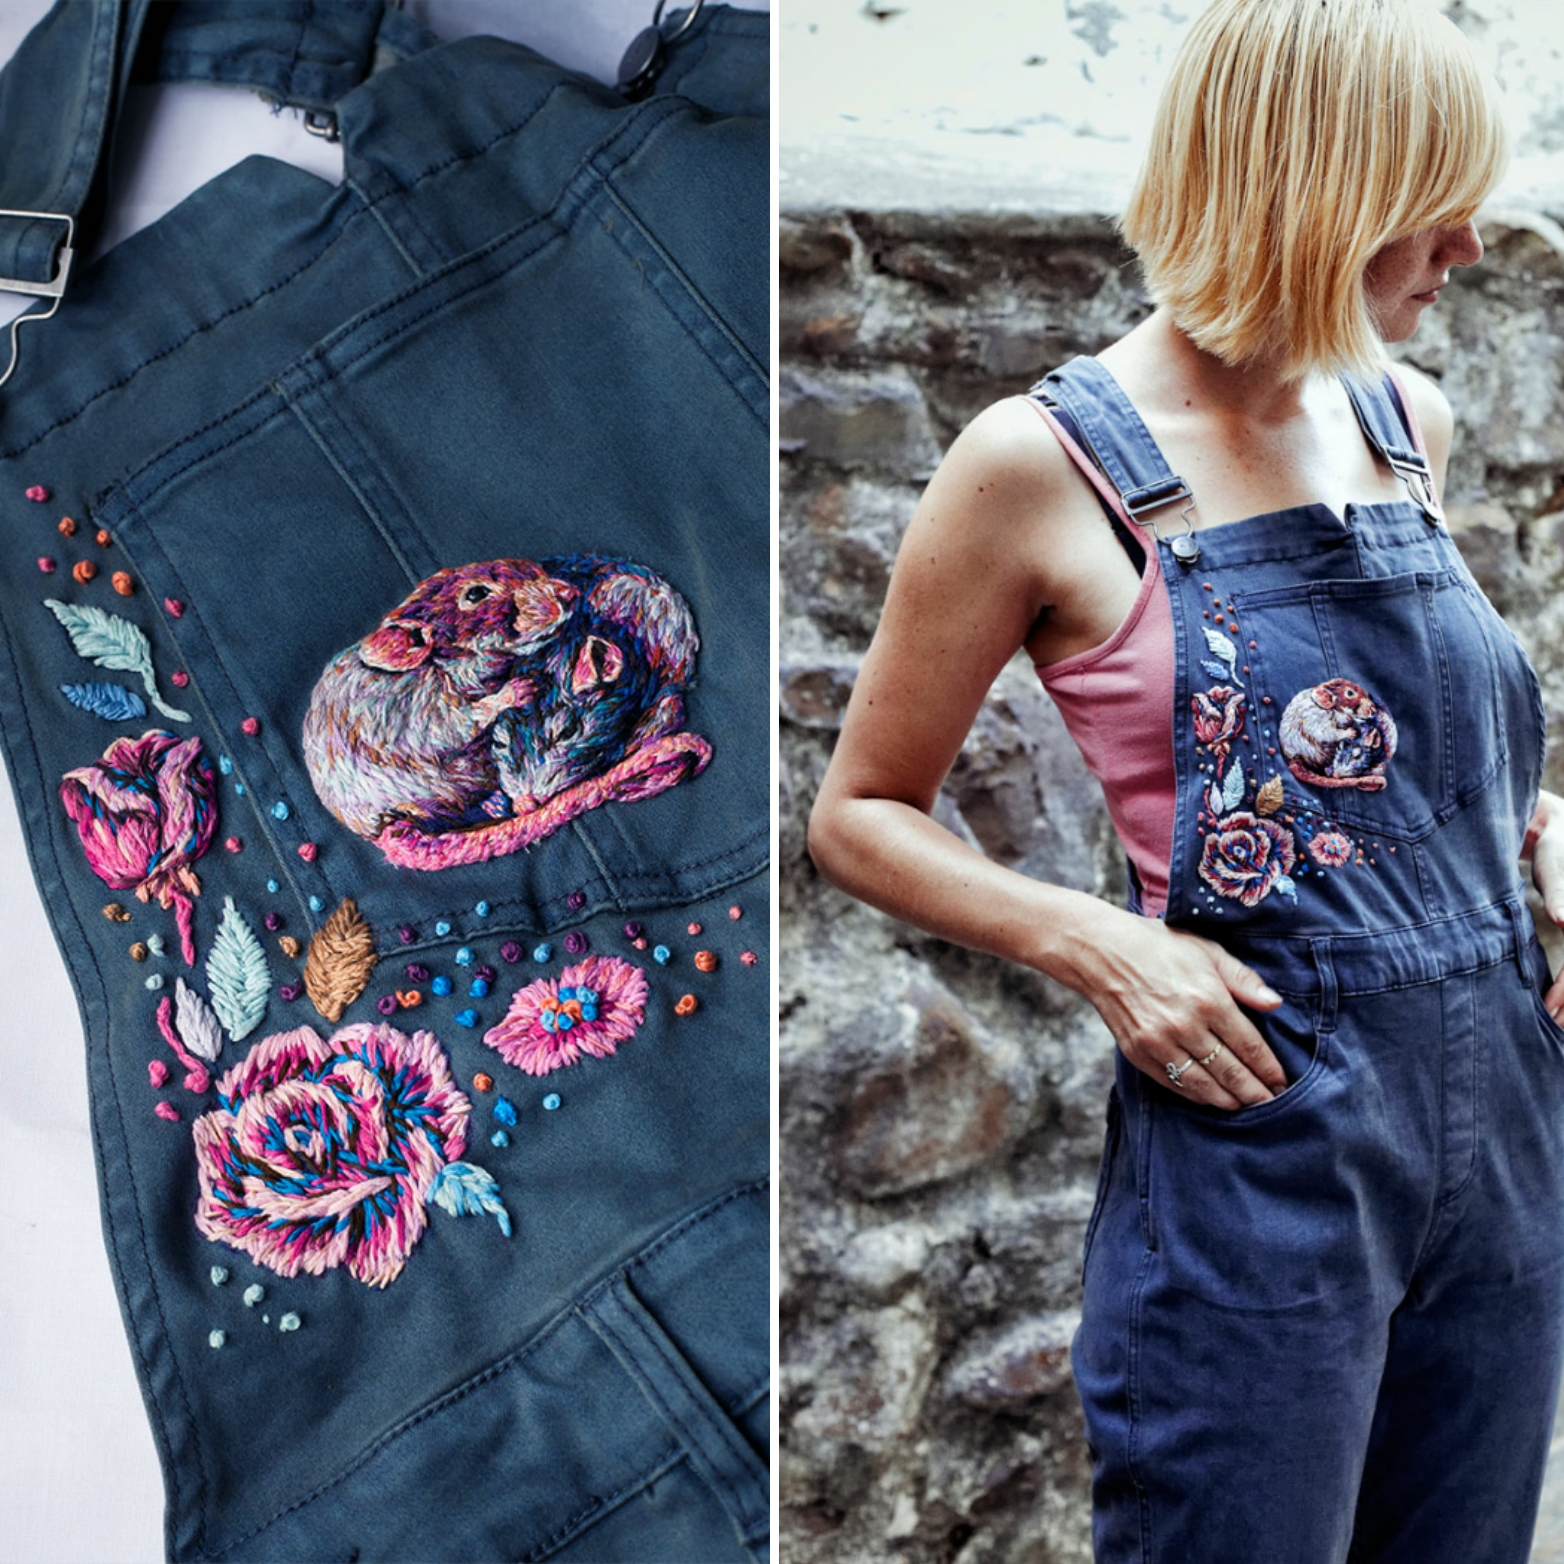 Danielle wearing a customized garment with her embroideries – Photo by Lesca Lea